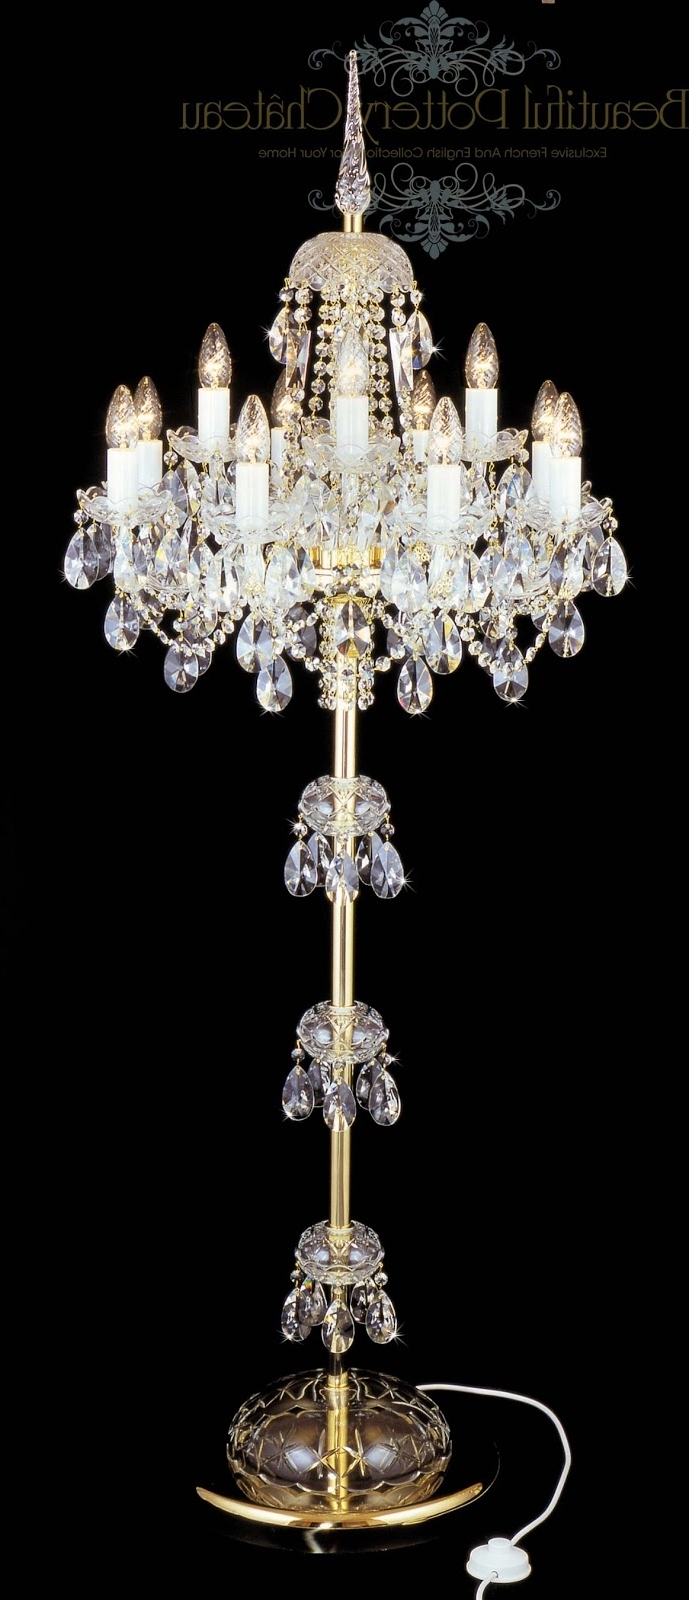 Standing Chandeliers With Regard To Popular Beautiful Pottery: Bohemian Crystals Standing Chandelier (View 8 of 15)